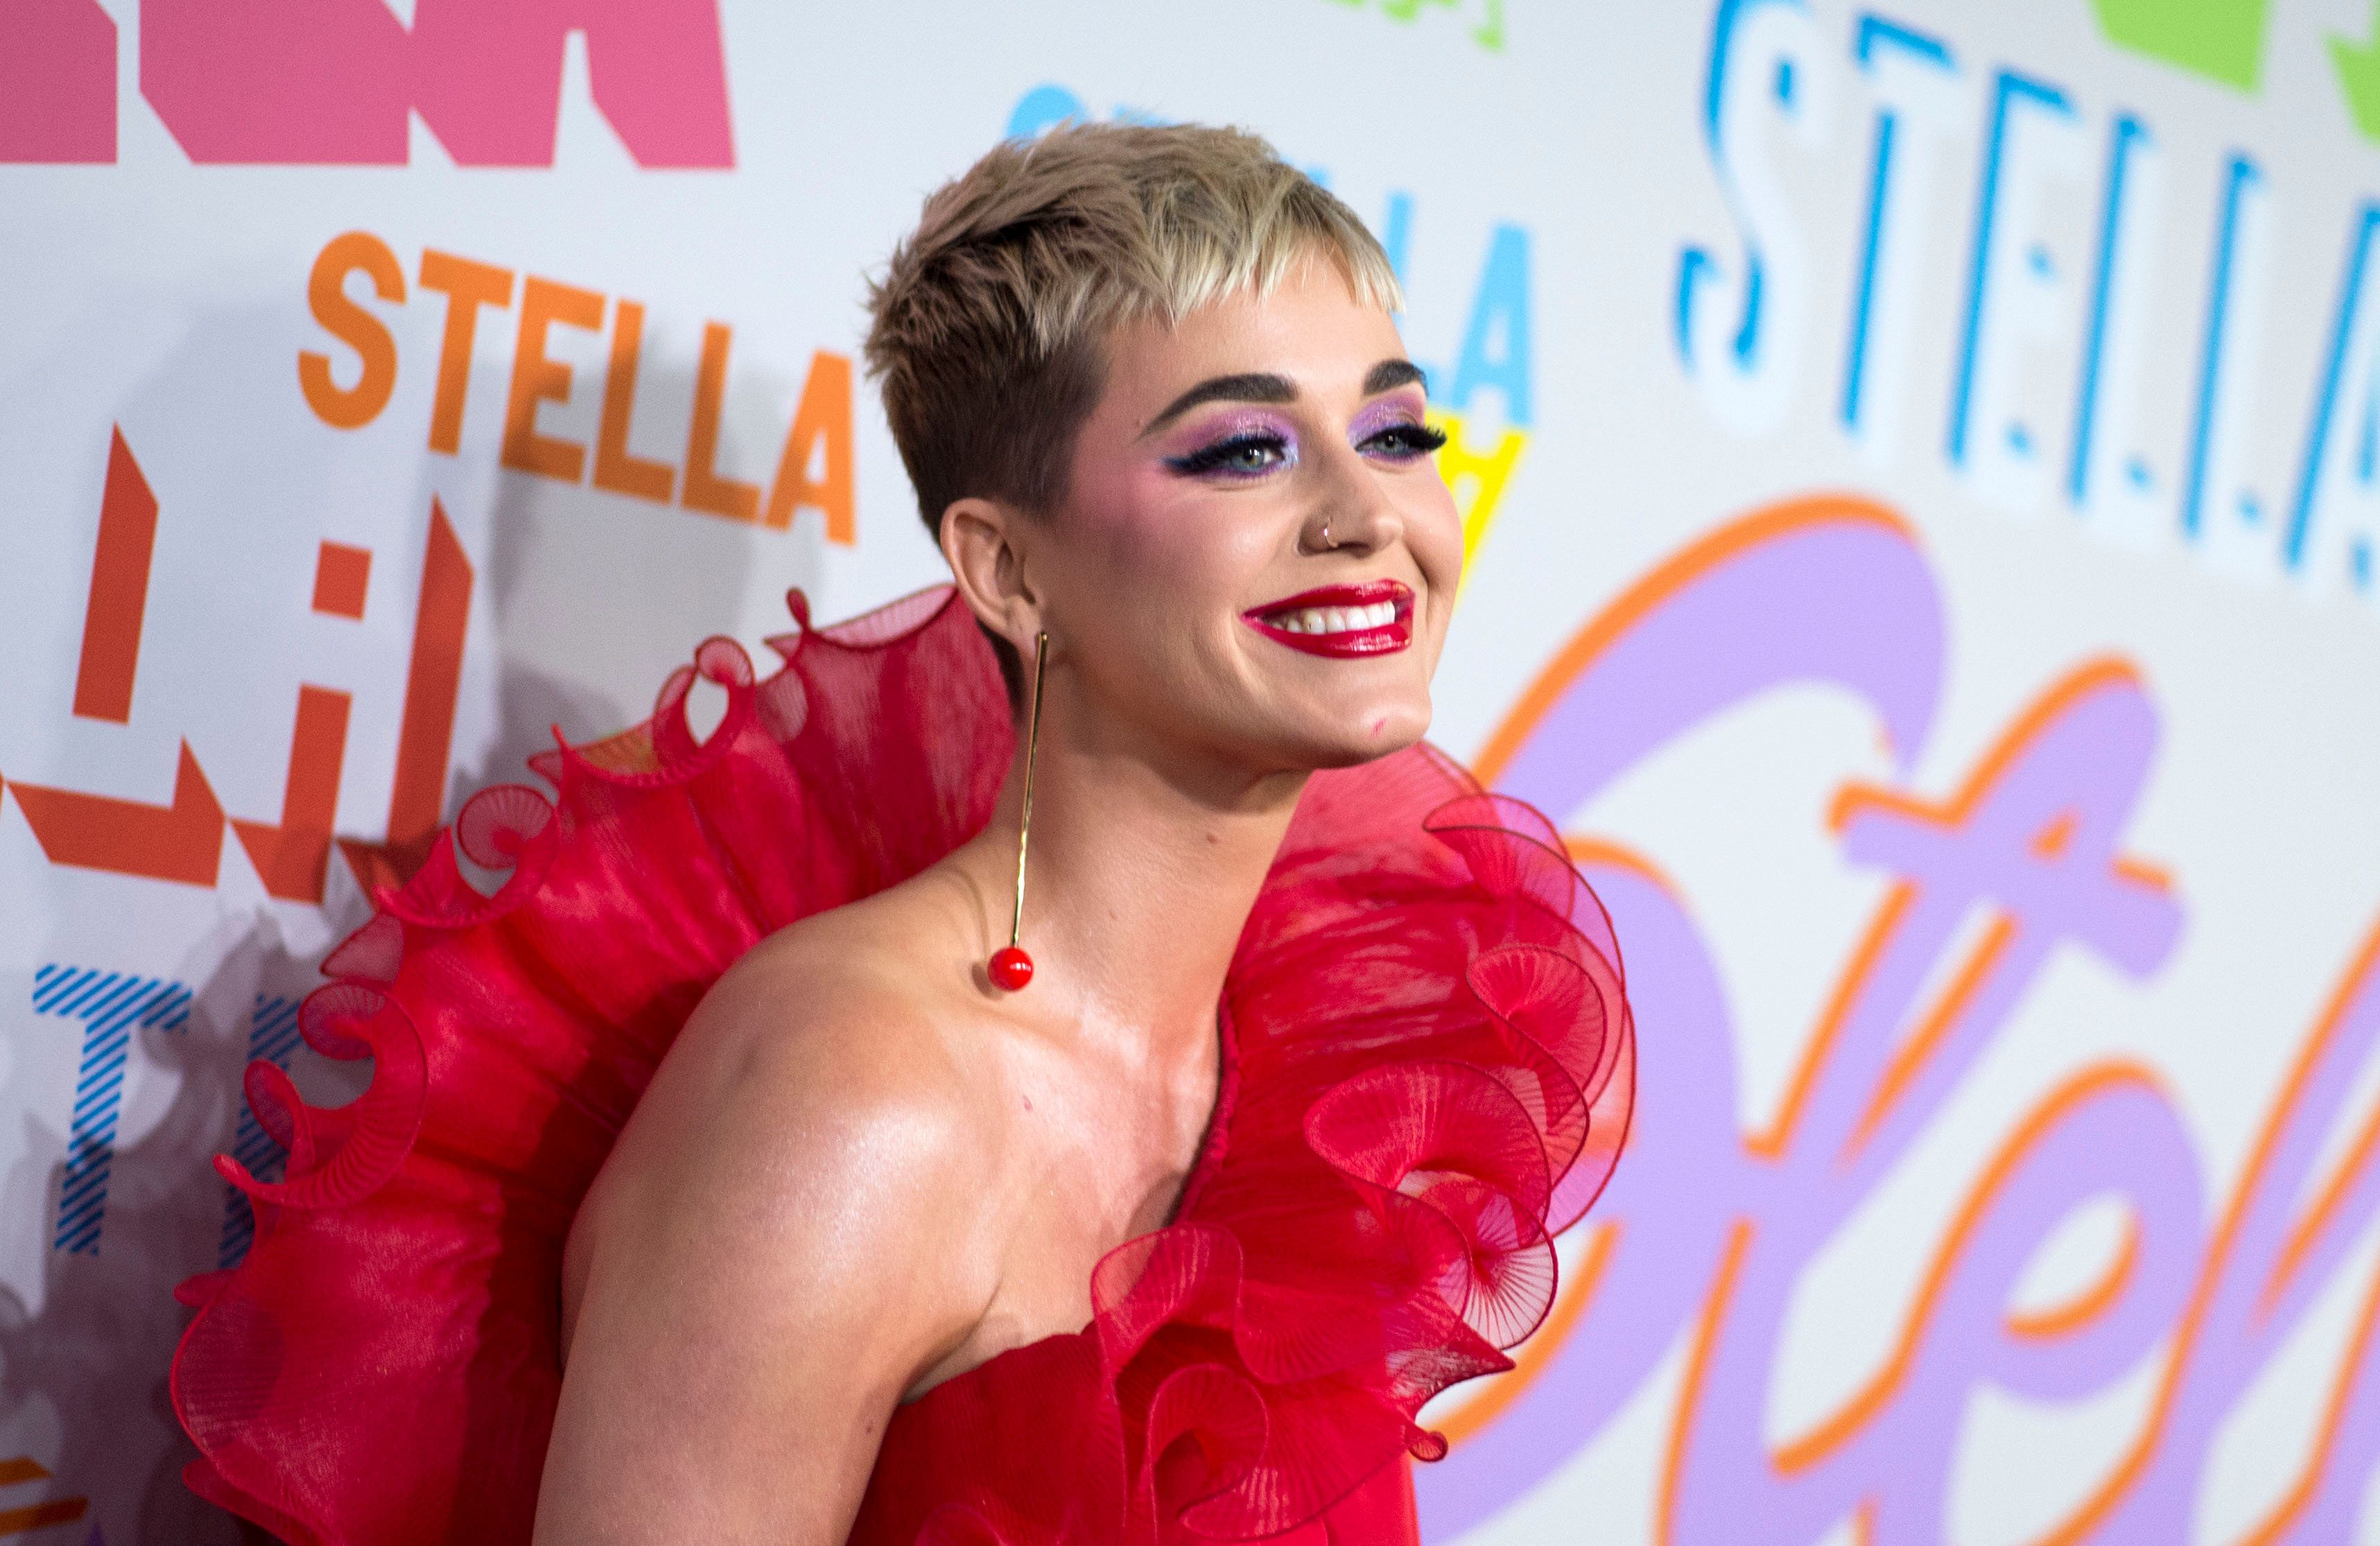 Singer Katy Perry attends the Stella McCartney Autumn 2018 womenswear collection and Autumn Winter 2018 menswear collection on January 16, 2018, in Hollywood, California. / AFP PHOTO / VALERIE MACON        (Photo credit should read VALERIE MACON/AFP/Getty Images)